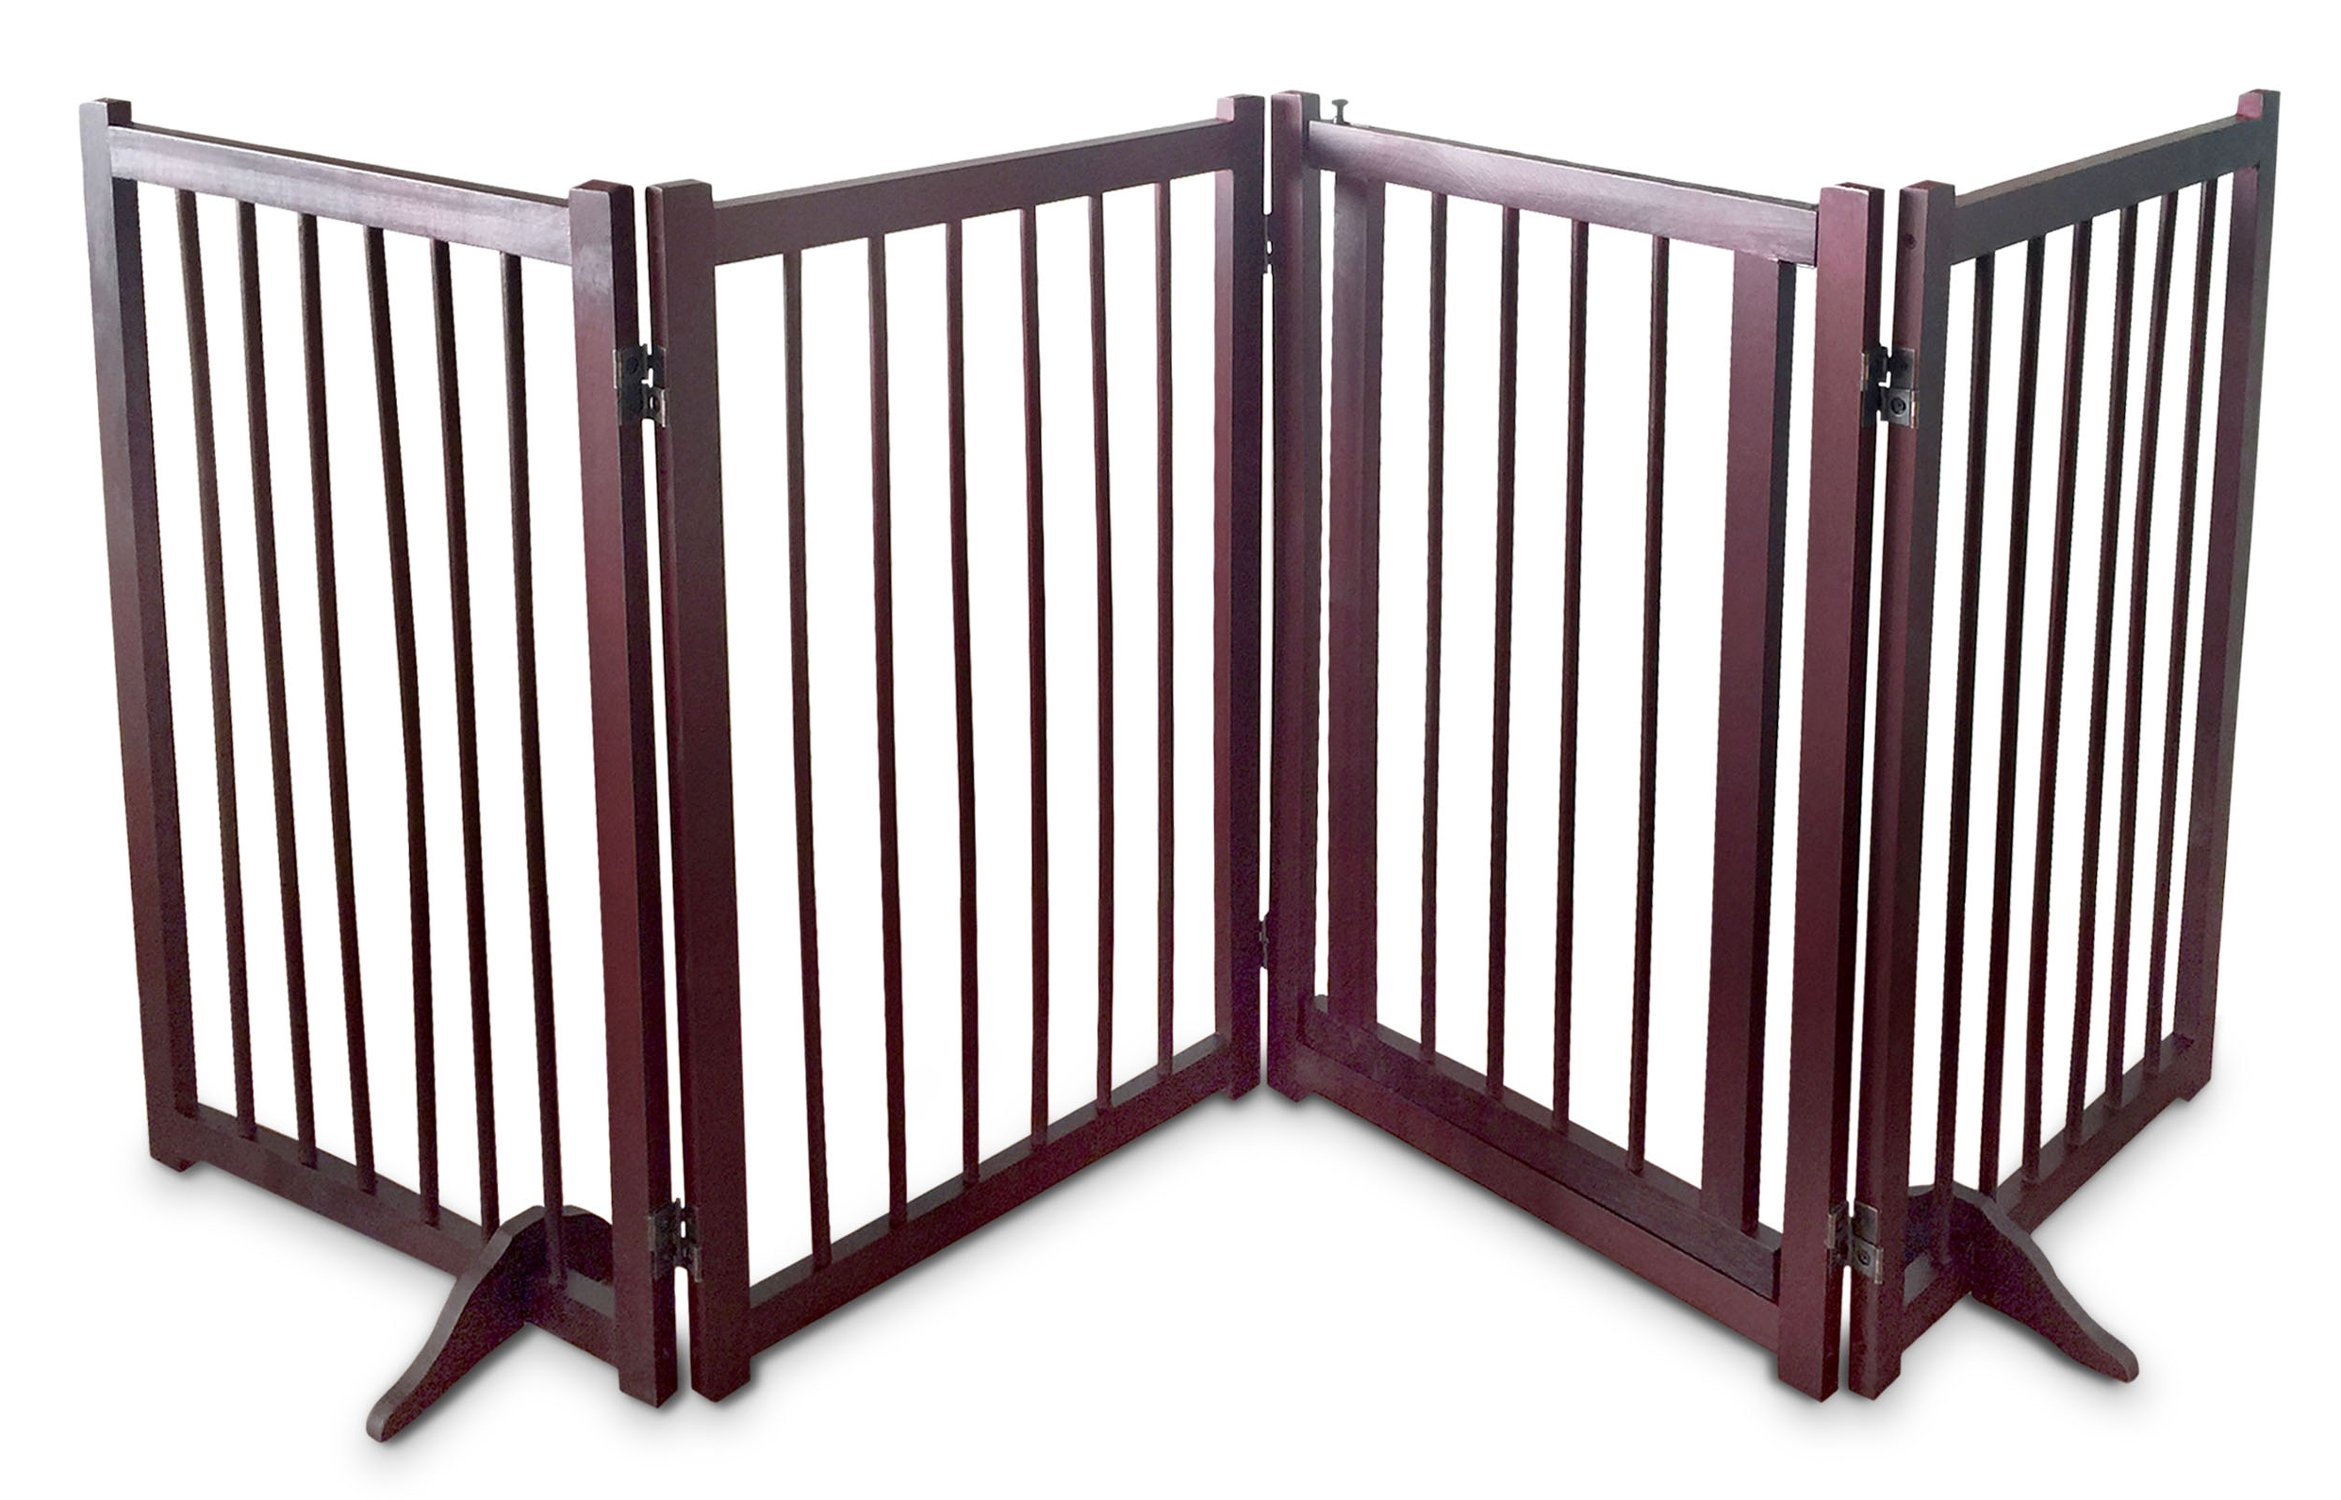 Dog Gate Pet Fence Barrier - Large 80'' W x 30'' H Portable Collapsible Folding Wooden Panels Doggie Puppy Fencing Enclosure System -Free Standing With Walk Thru Latch Lock Doggy Door Perfect Life Ideas